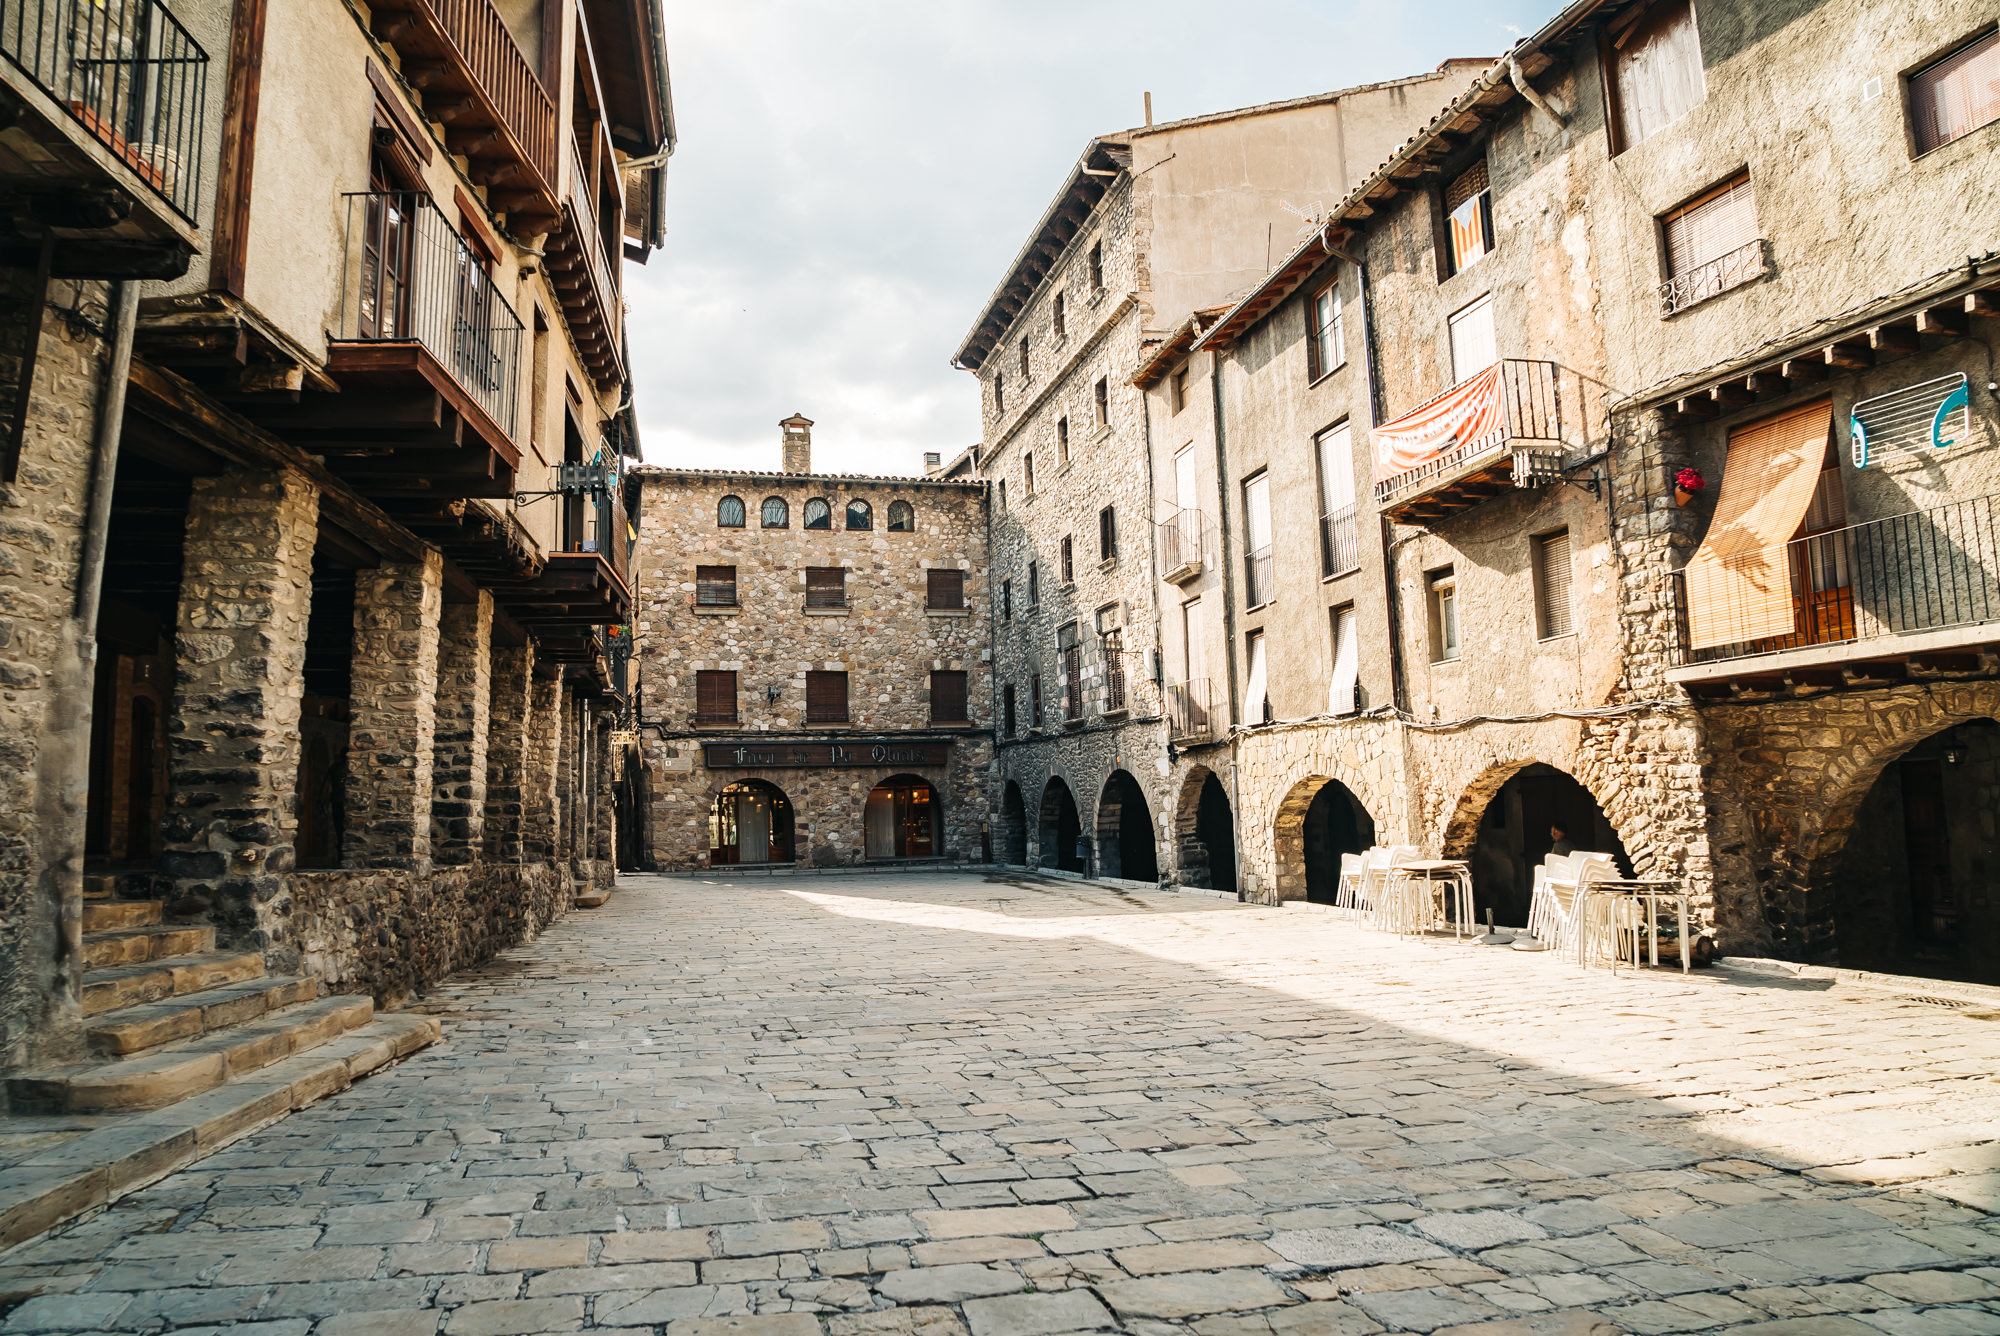 Plaça Porxada, a little square built in the 13th century.